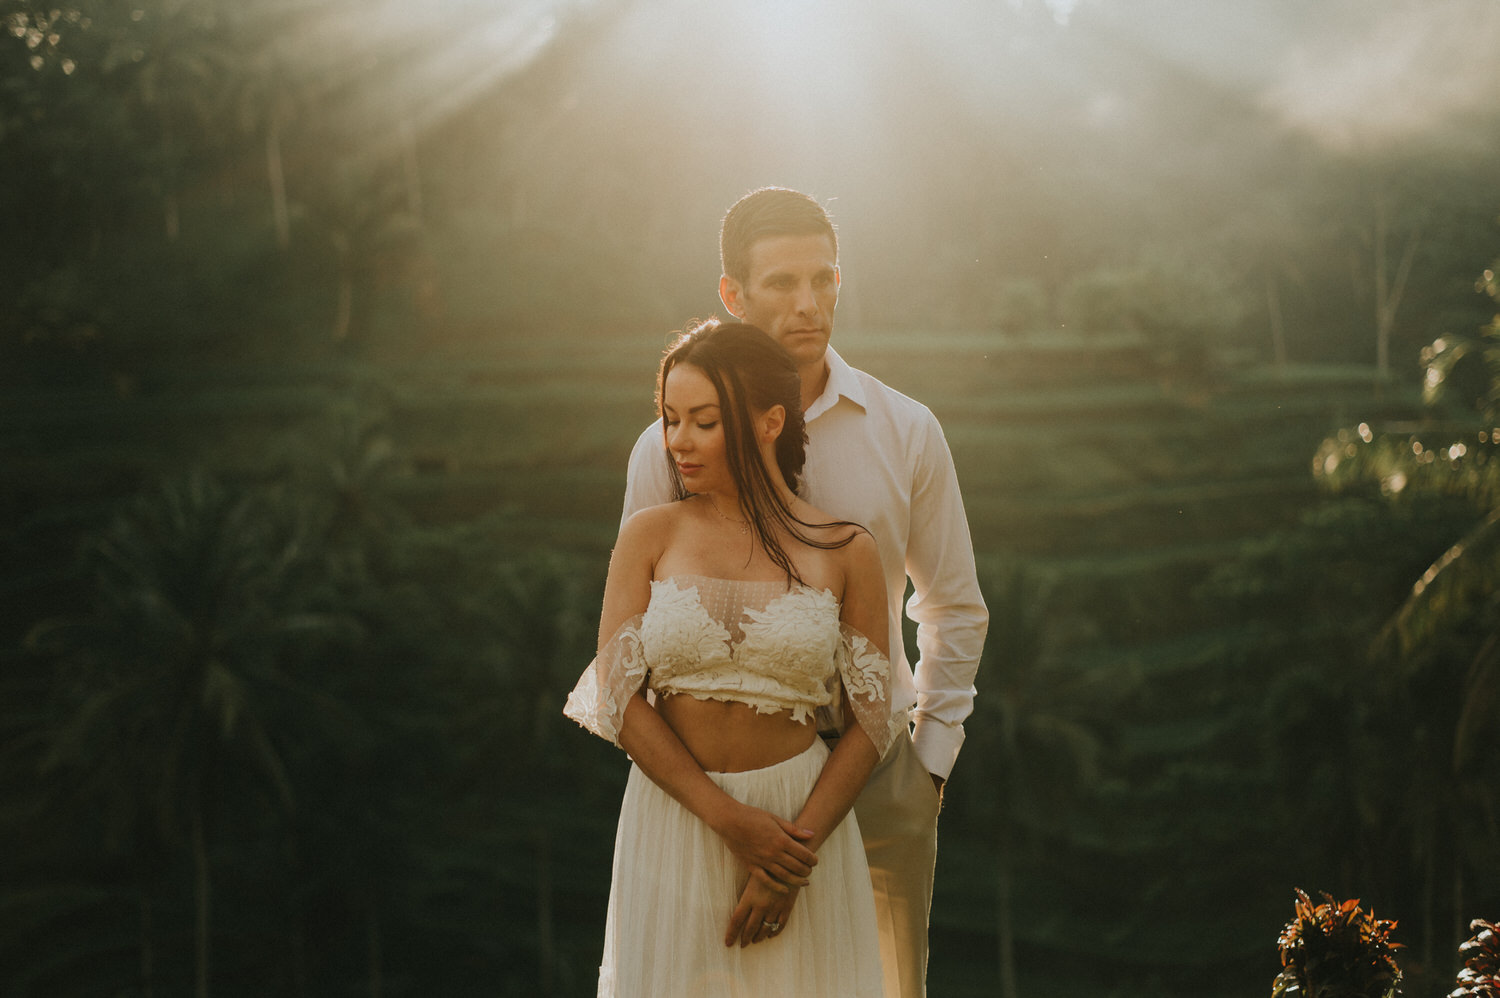 bali wedding - elopement - ubud wedding - diktatphotography - olga + Jason - 14